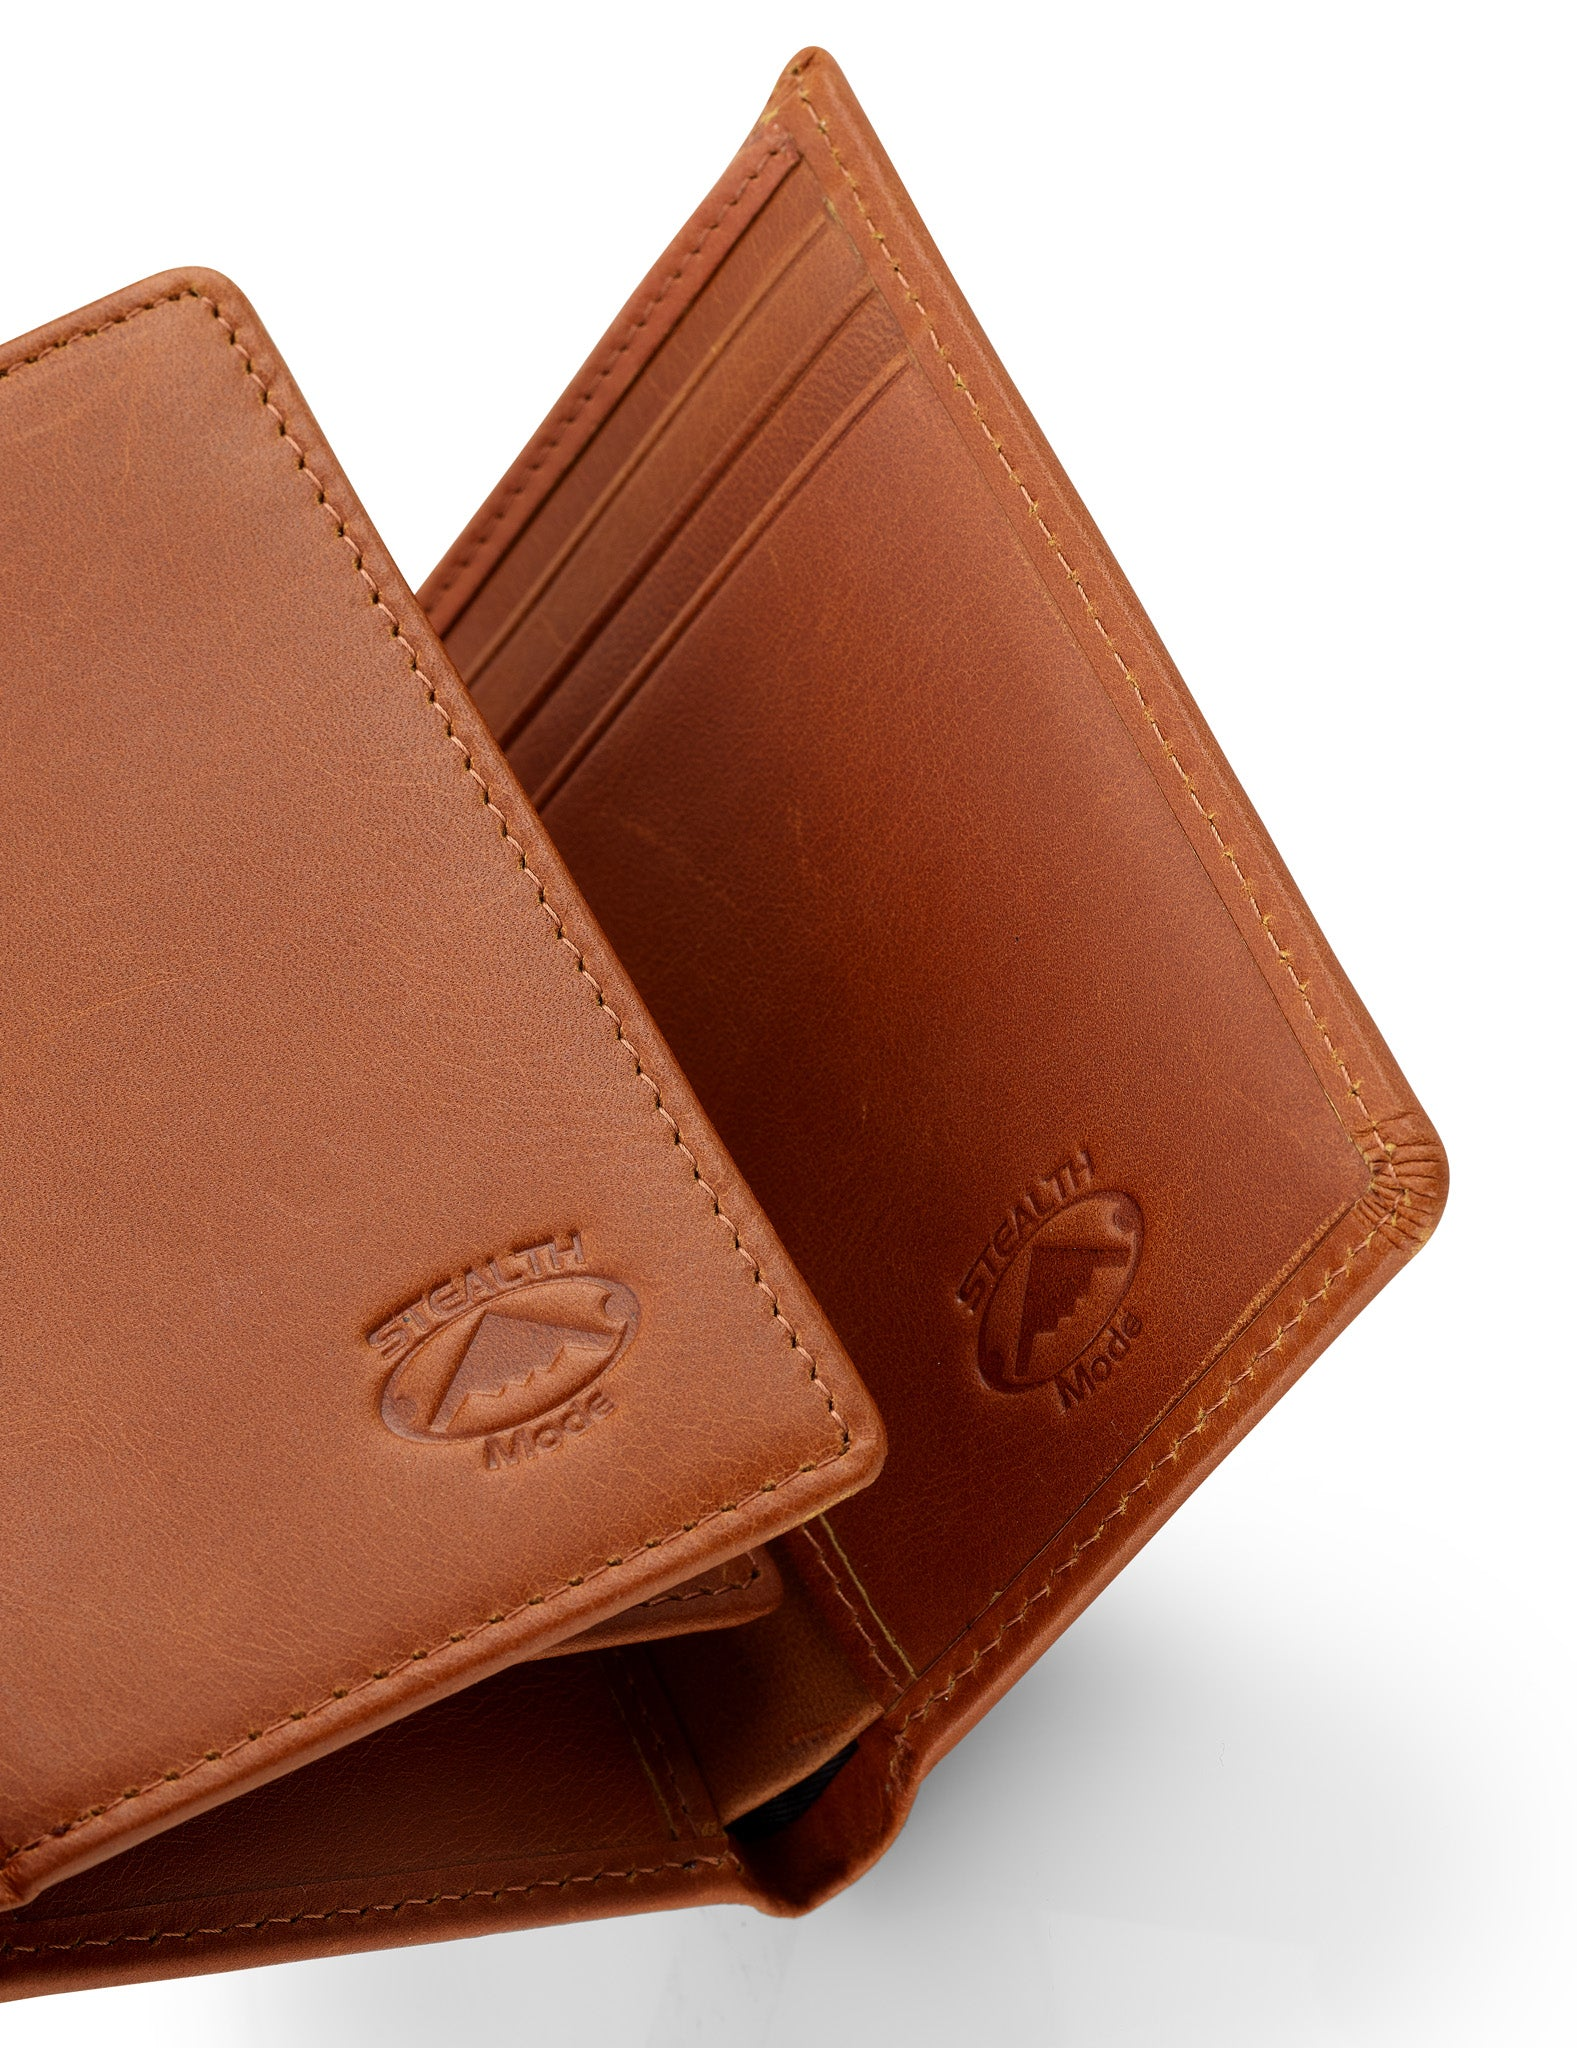 Trifold Leather Wallet for Men with ID Holder and RFID Blocking (Light Brown)